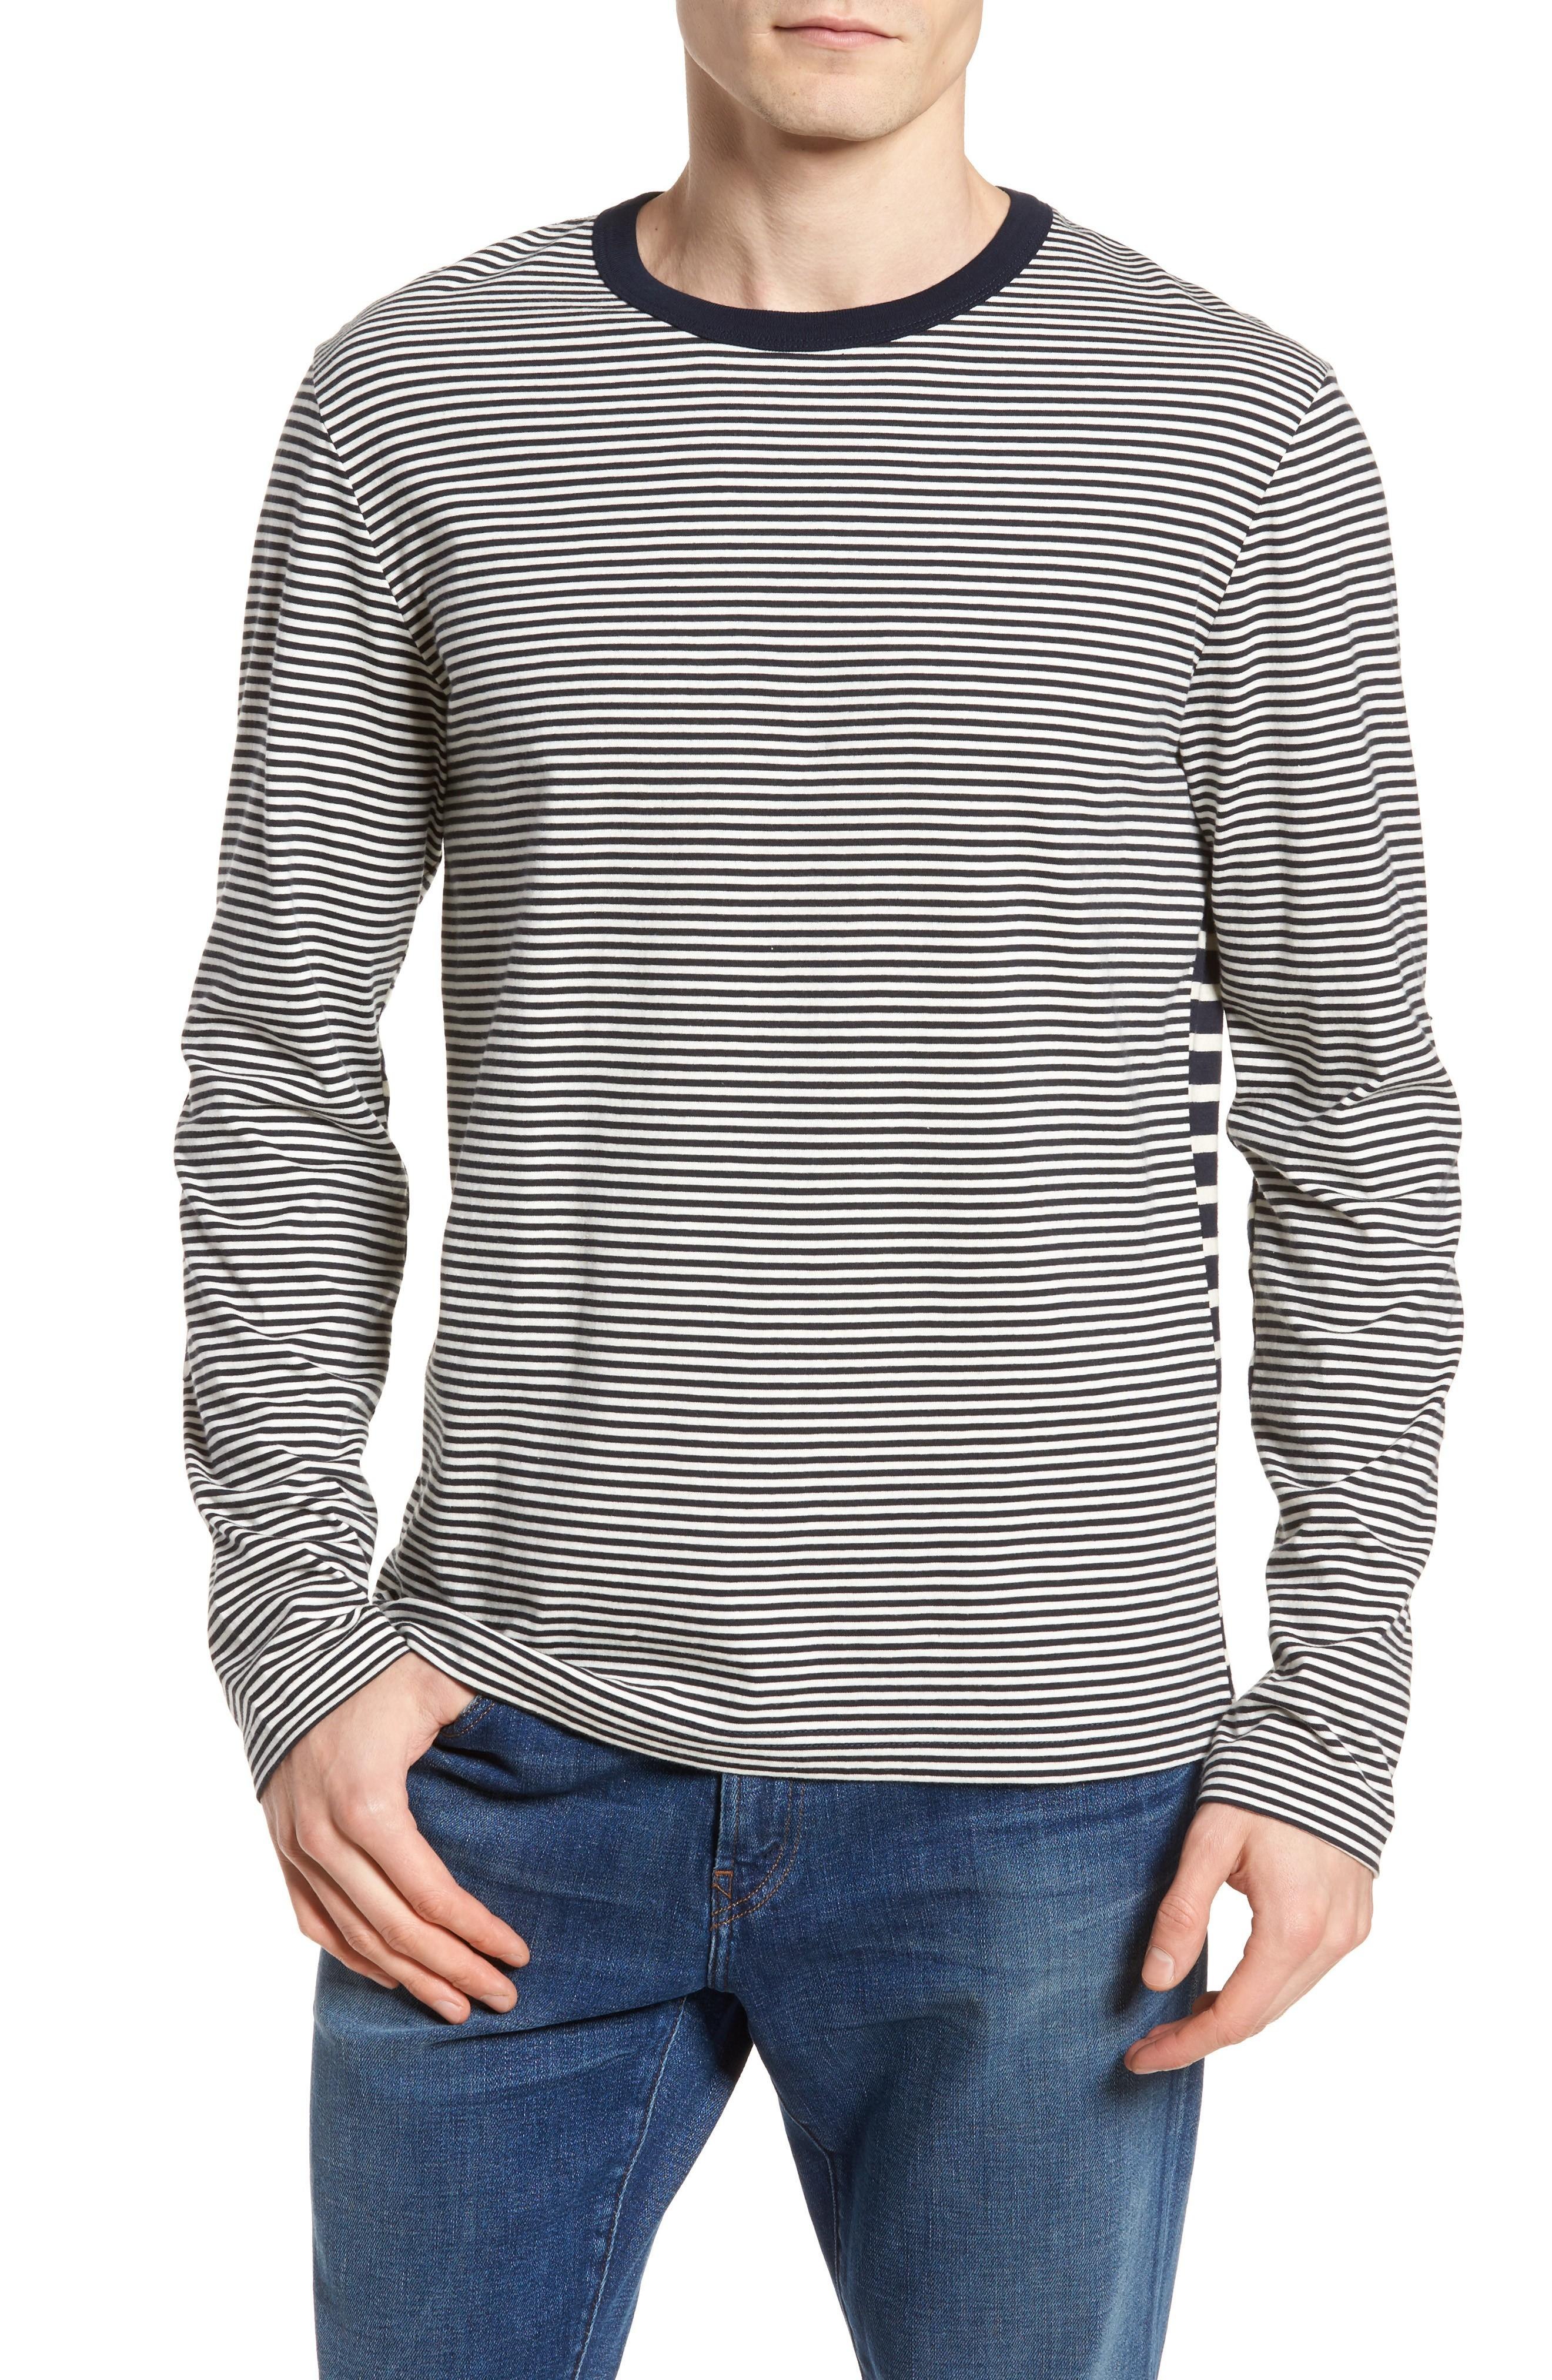 French Connection Mix Stripe Long Sleeve T-shirt In Turtle Dove/ Marine Blue